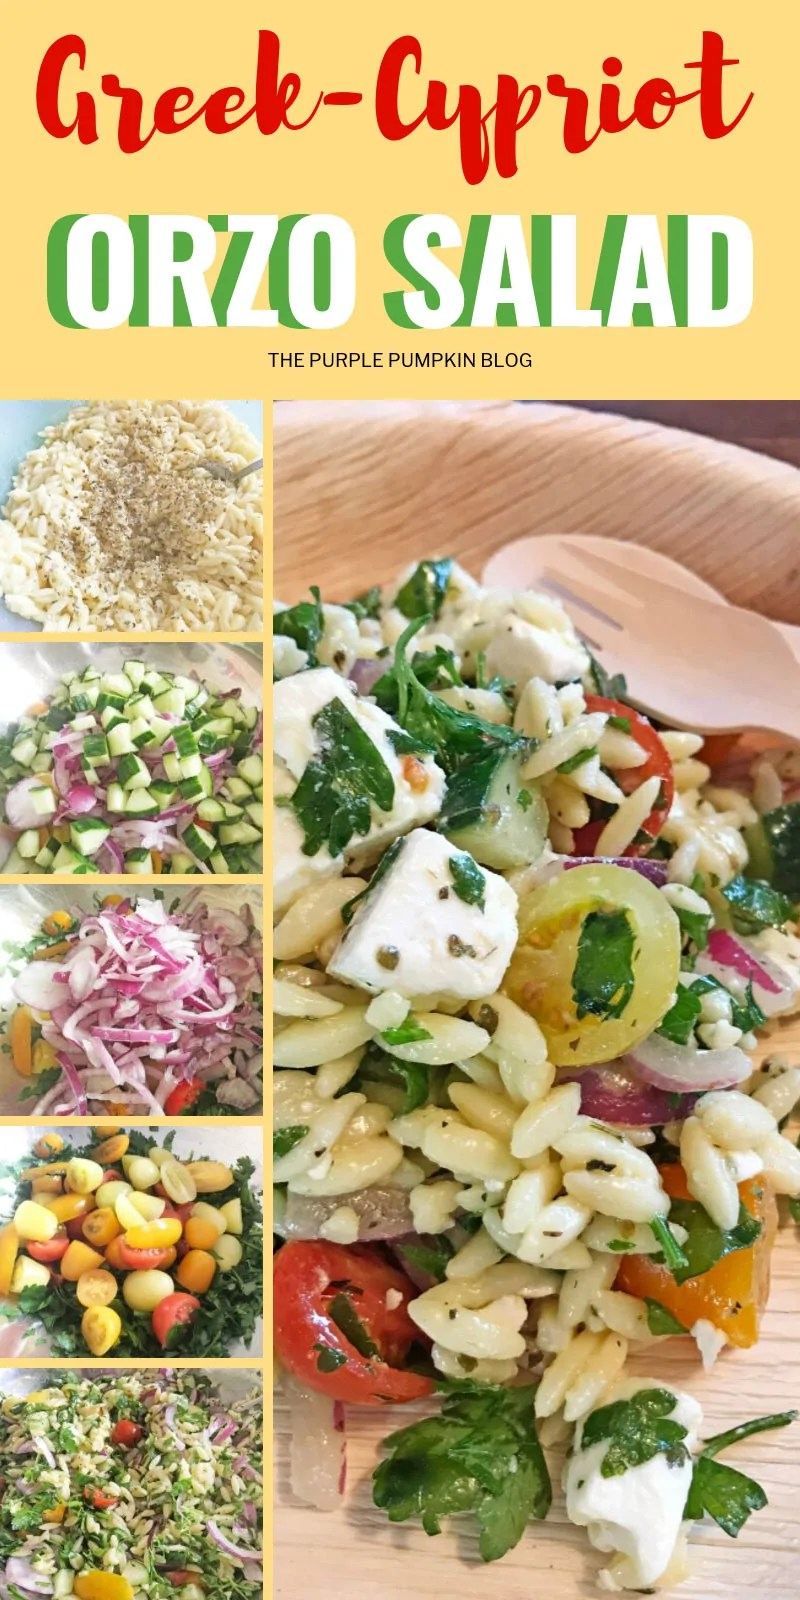 Greek Cypriot orzo salad - pictures of each step of the recipe.